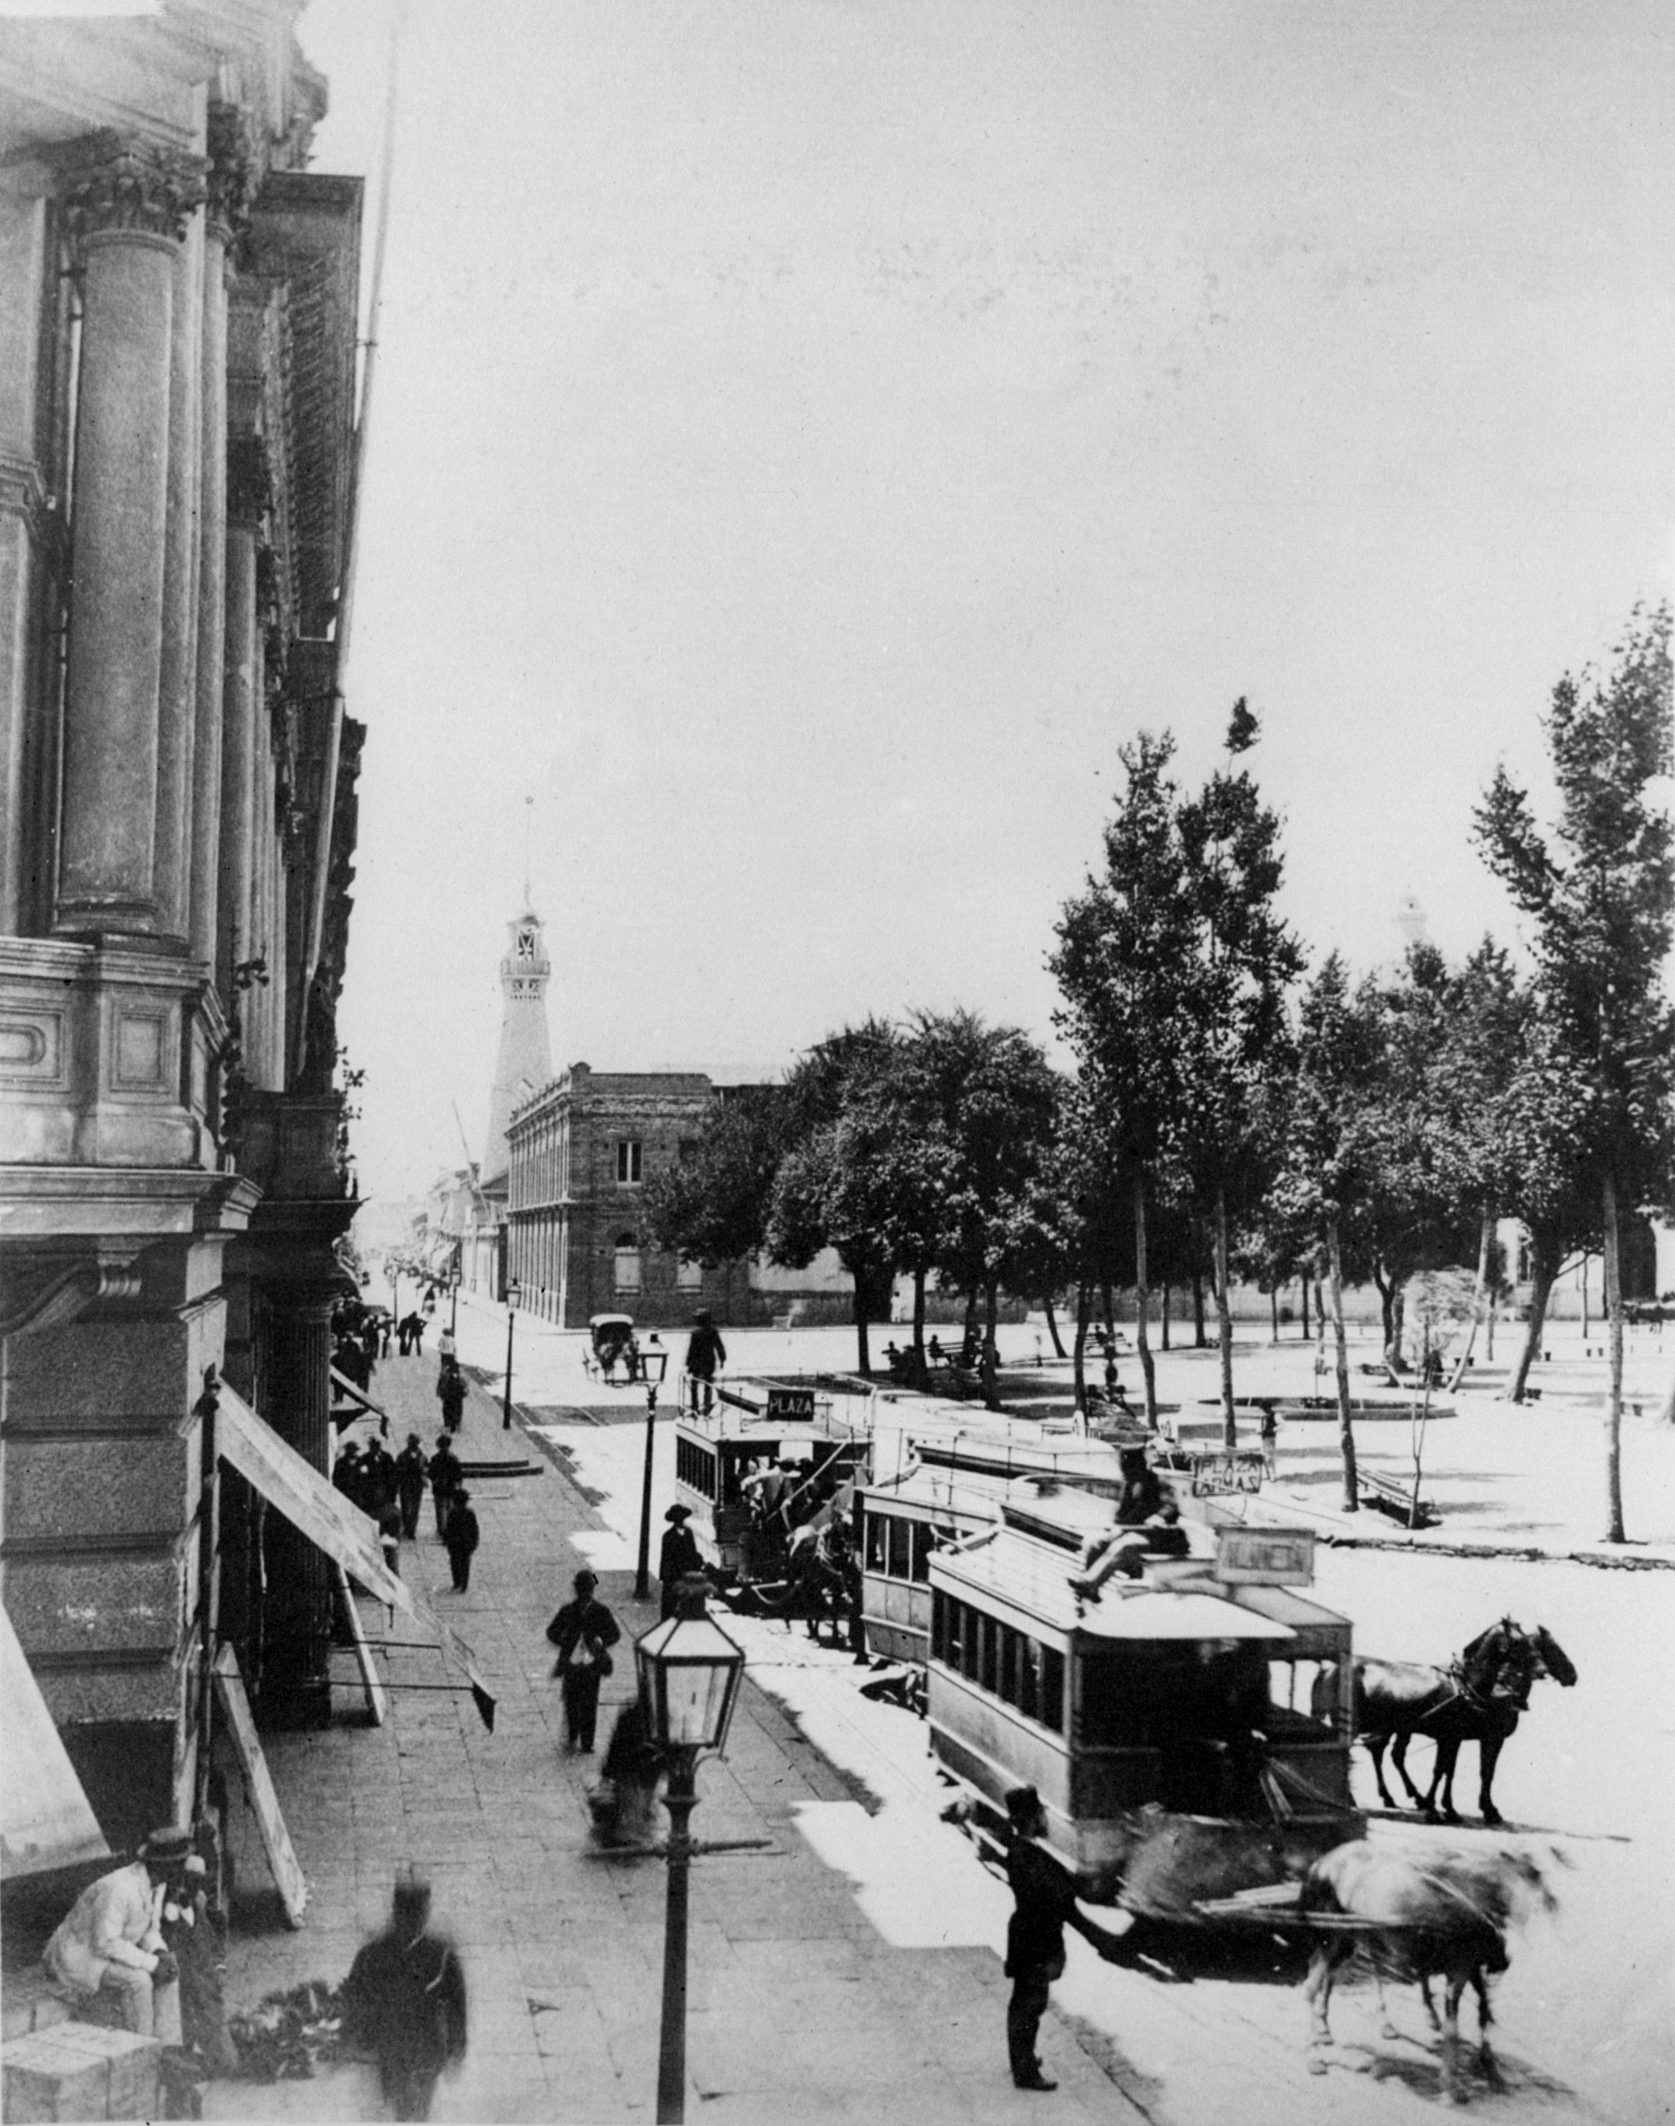 Enterreno - Fotos históricas de chile - fotos antiguas de Chile - Plaza de Armas de Santiago en 1895